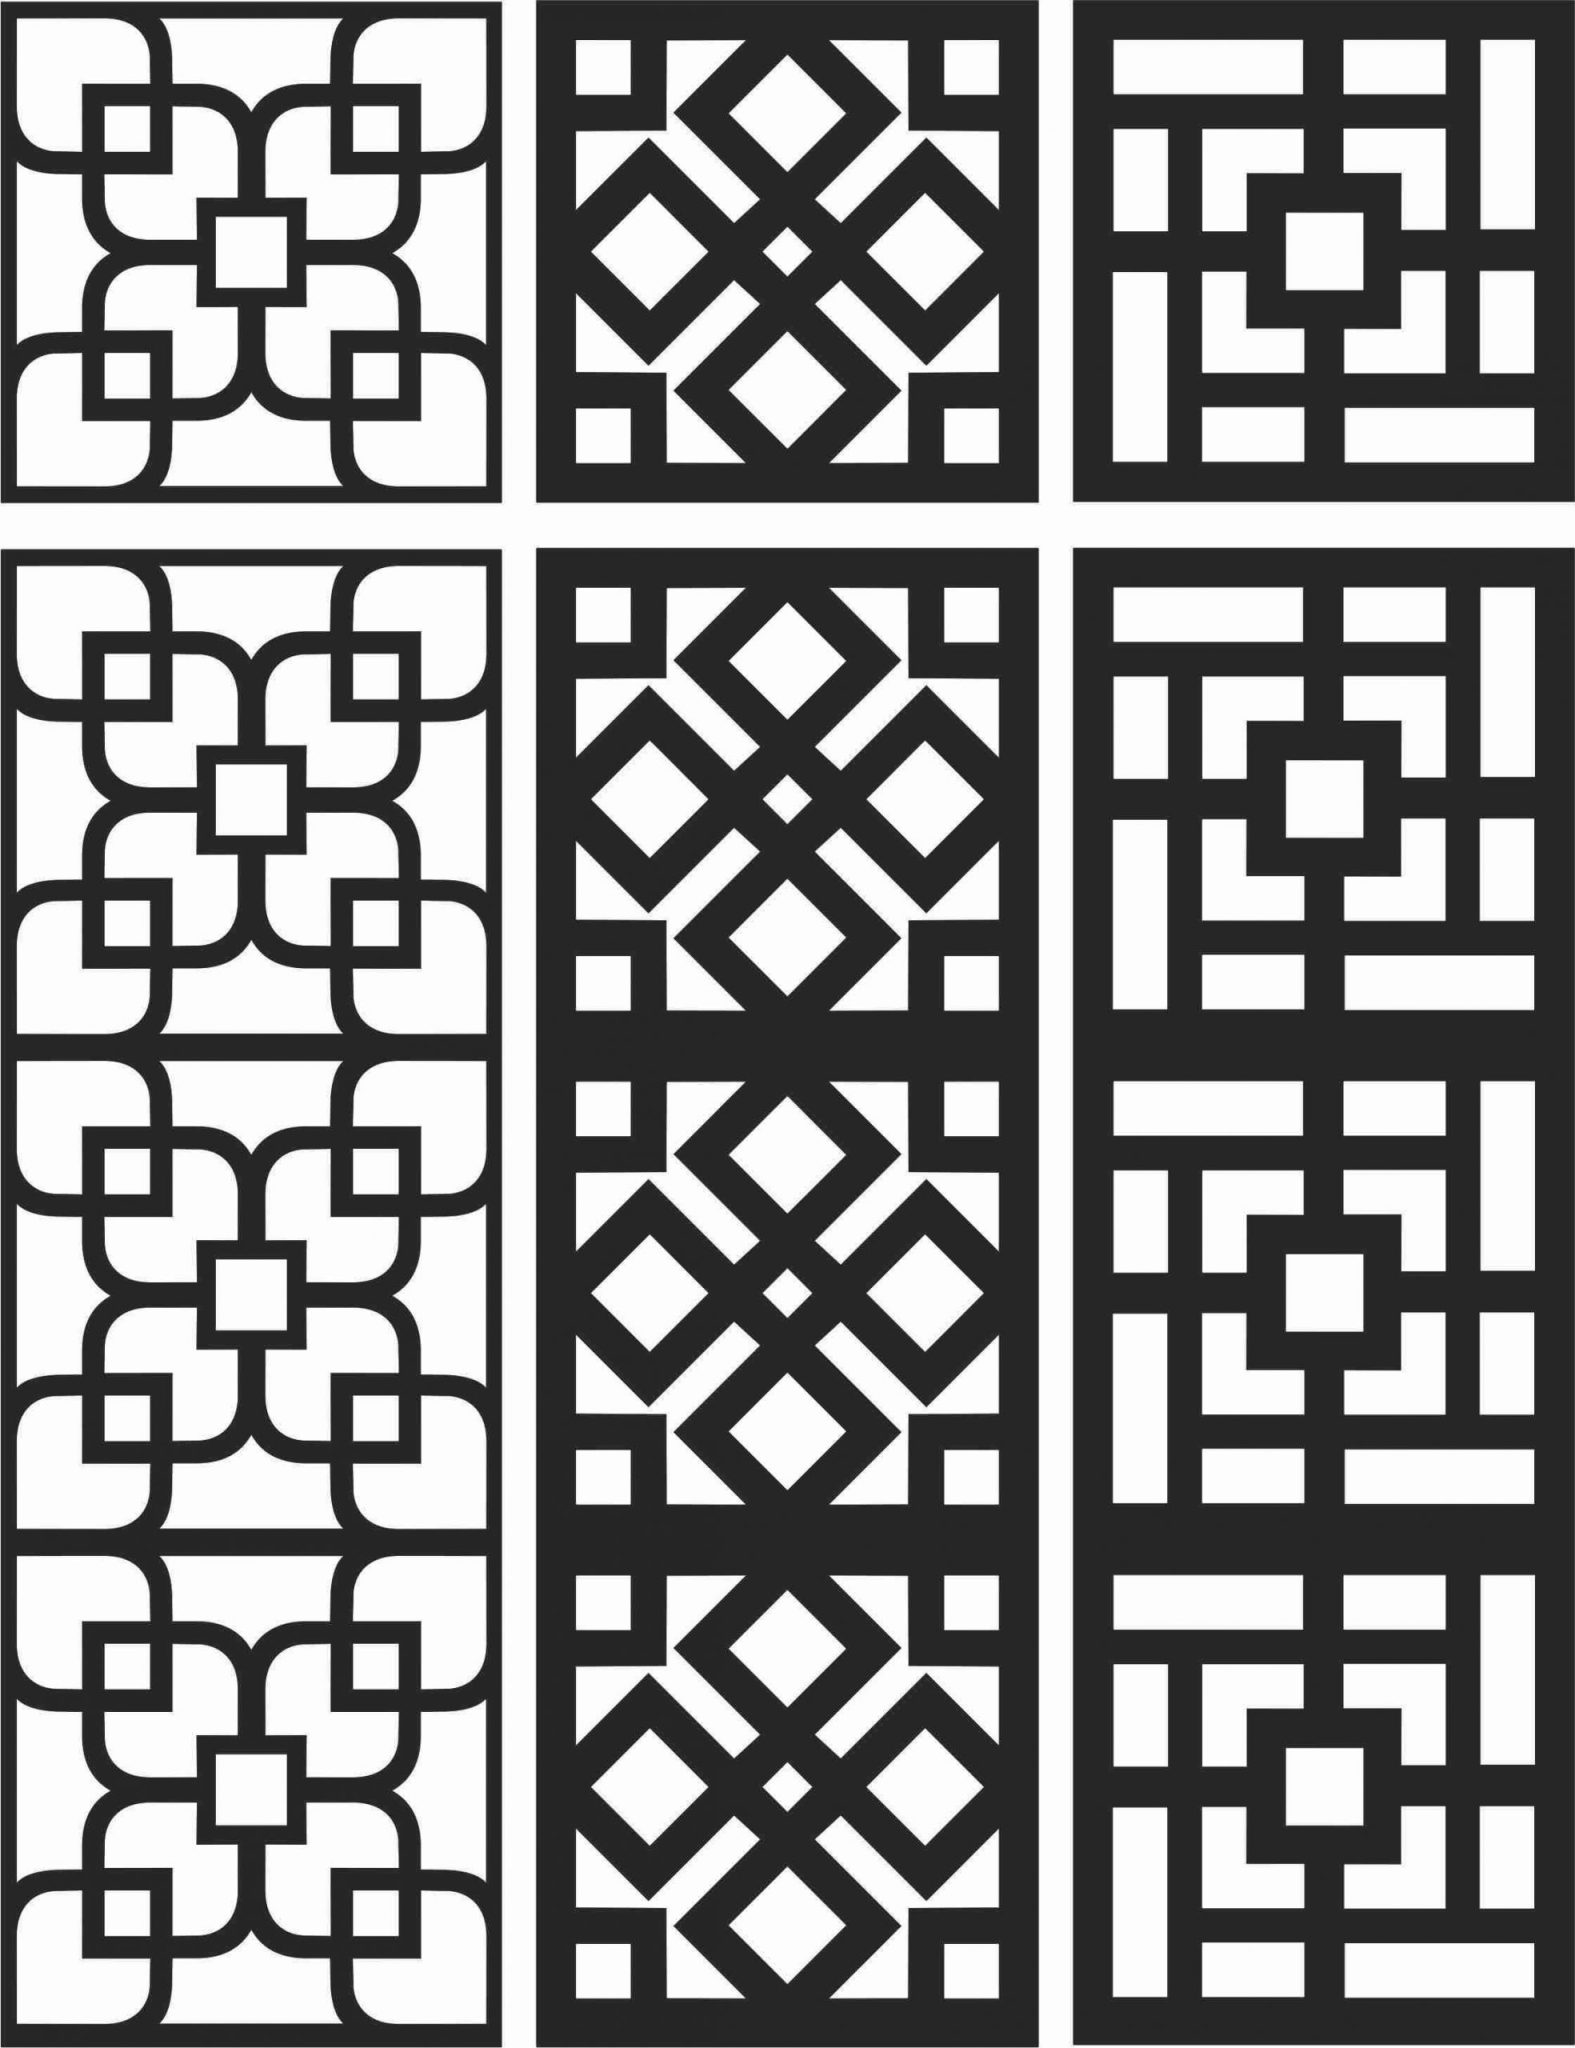 Floral Screen Patterns Design 104 Free DXF File